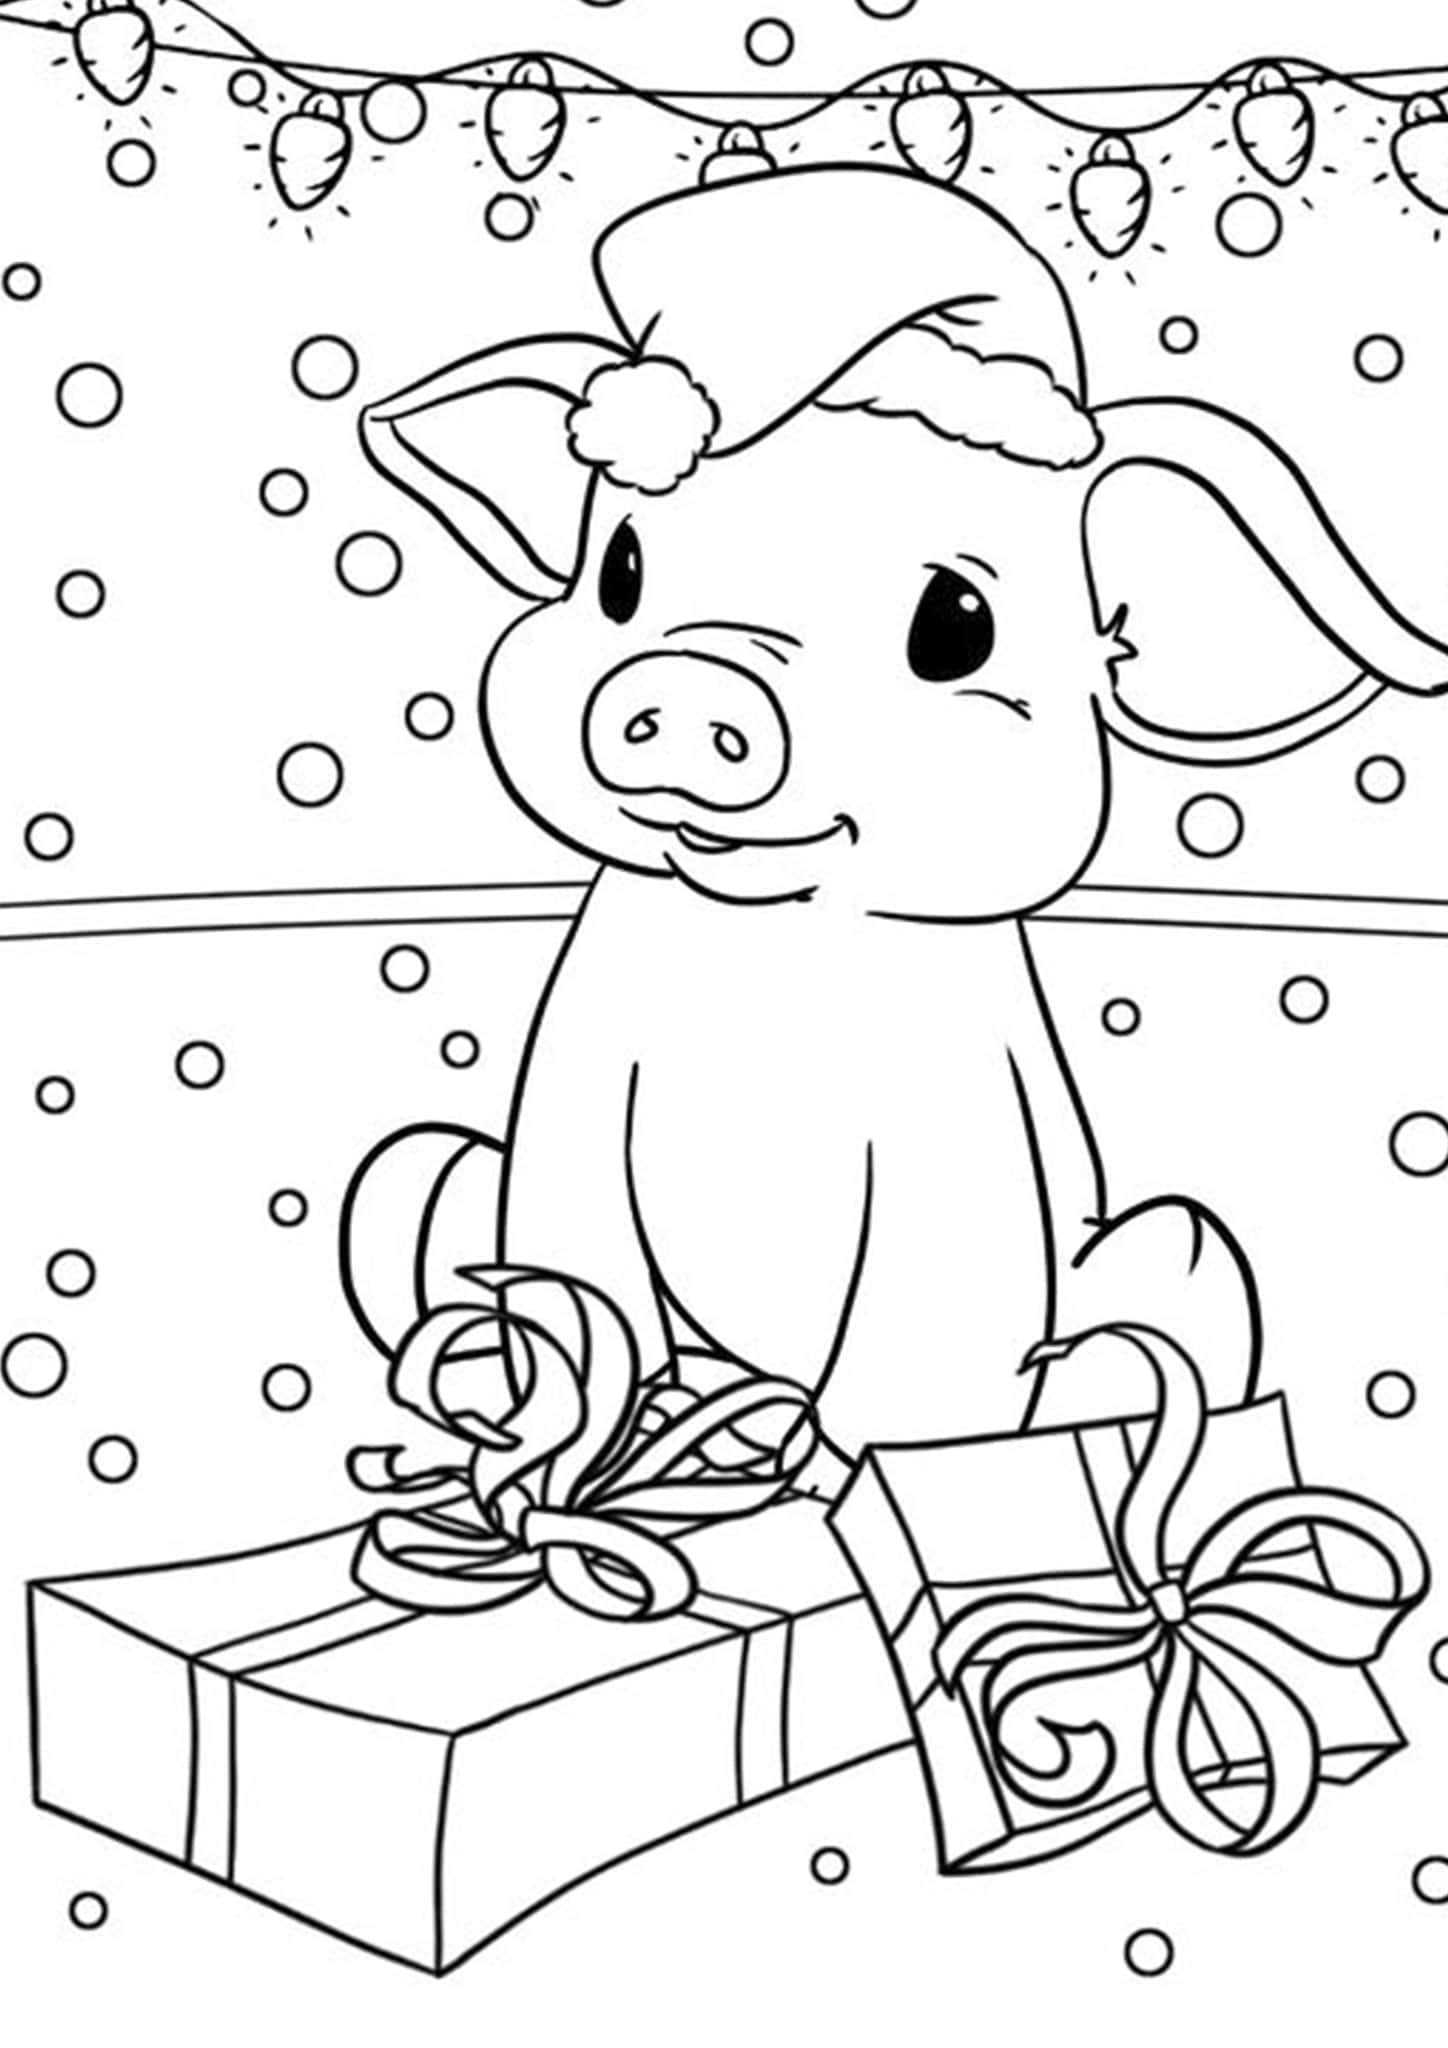 pig to colour free printable pig coloring pages for kids pig to colour